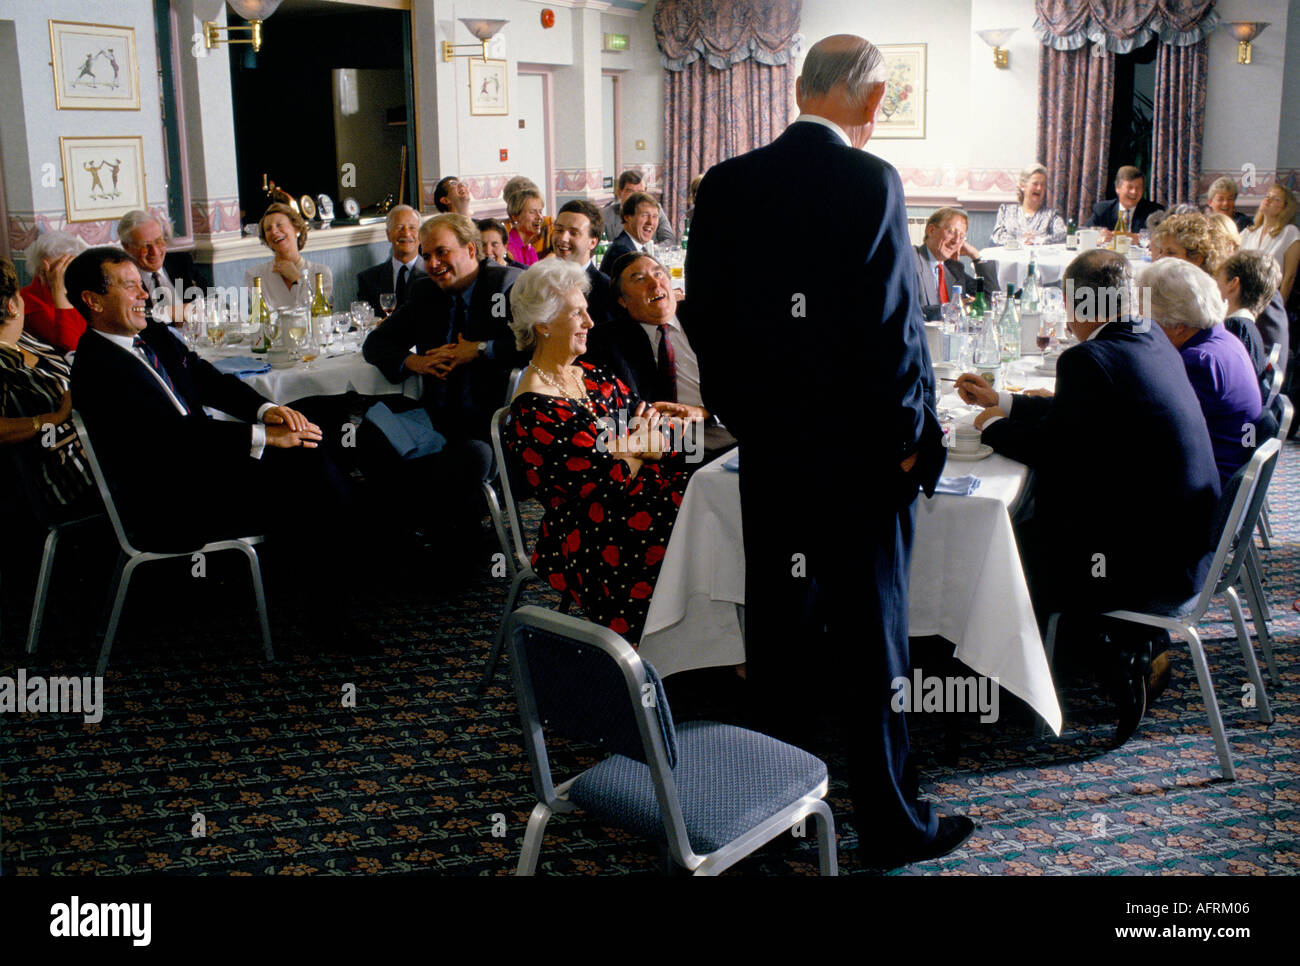 AFTER DINNER SPEAKERS AT THE GEORGE HOTEL GLOUCESTER PHOTO HOMER SYKES - Stock Image